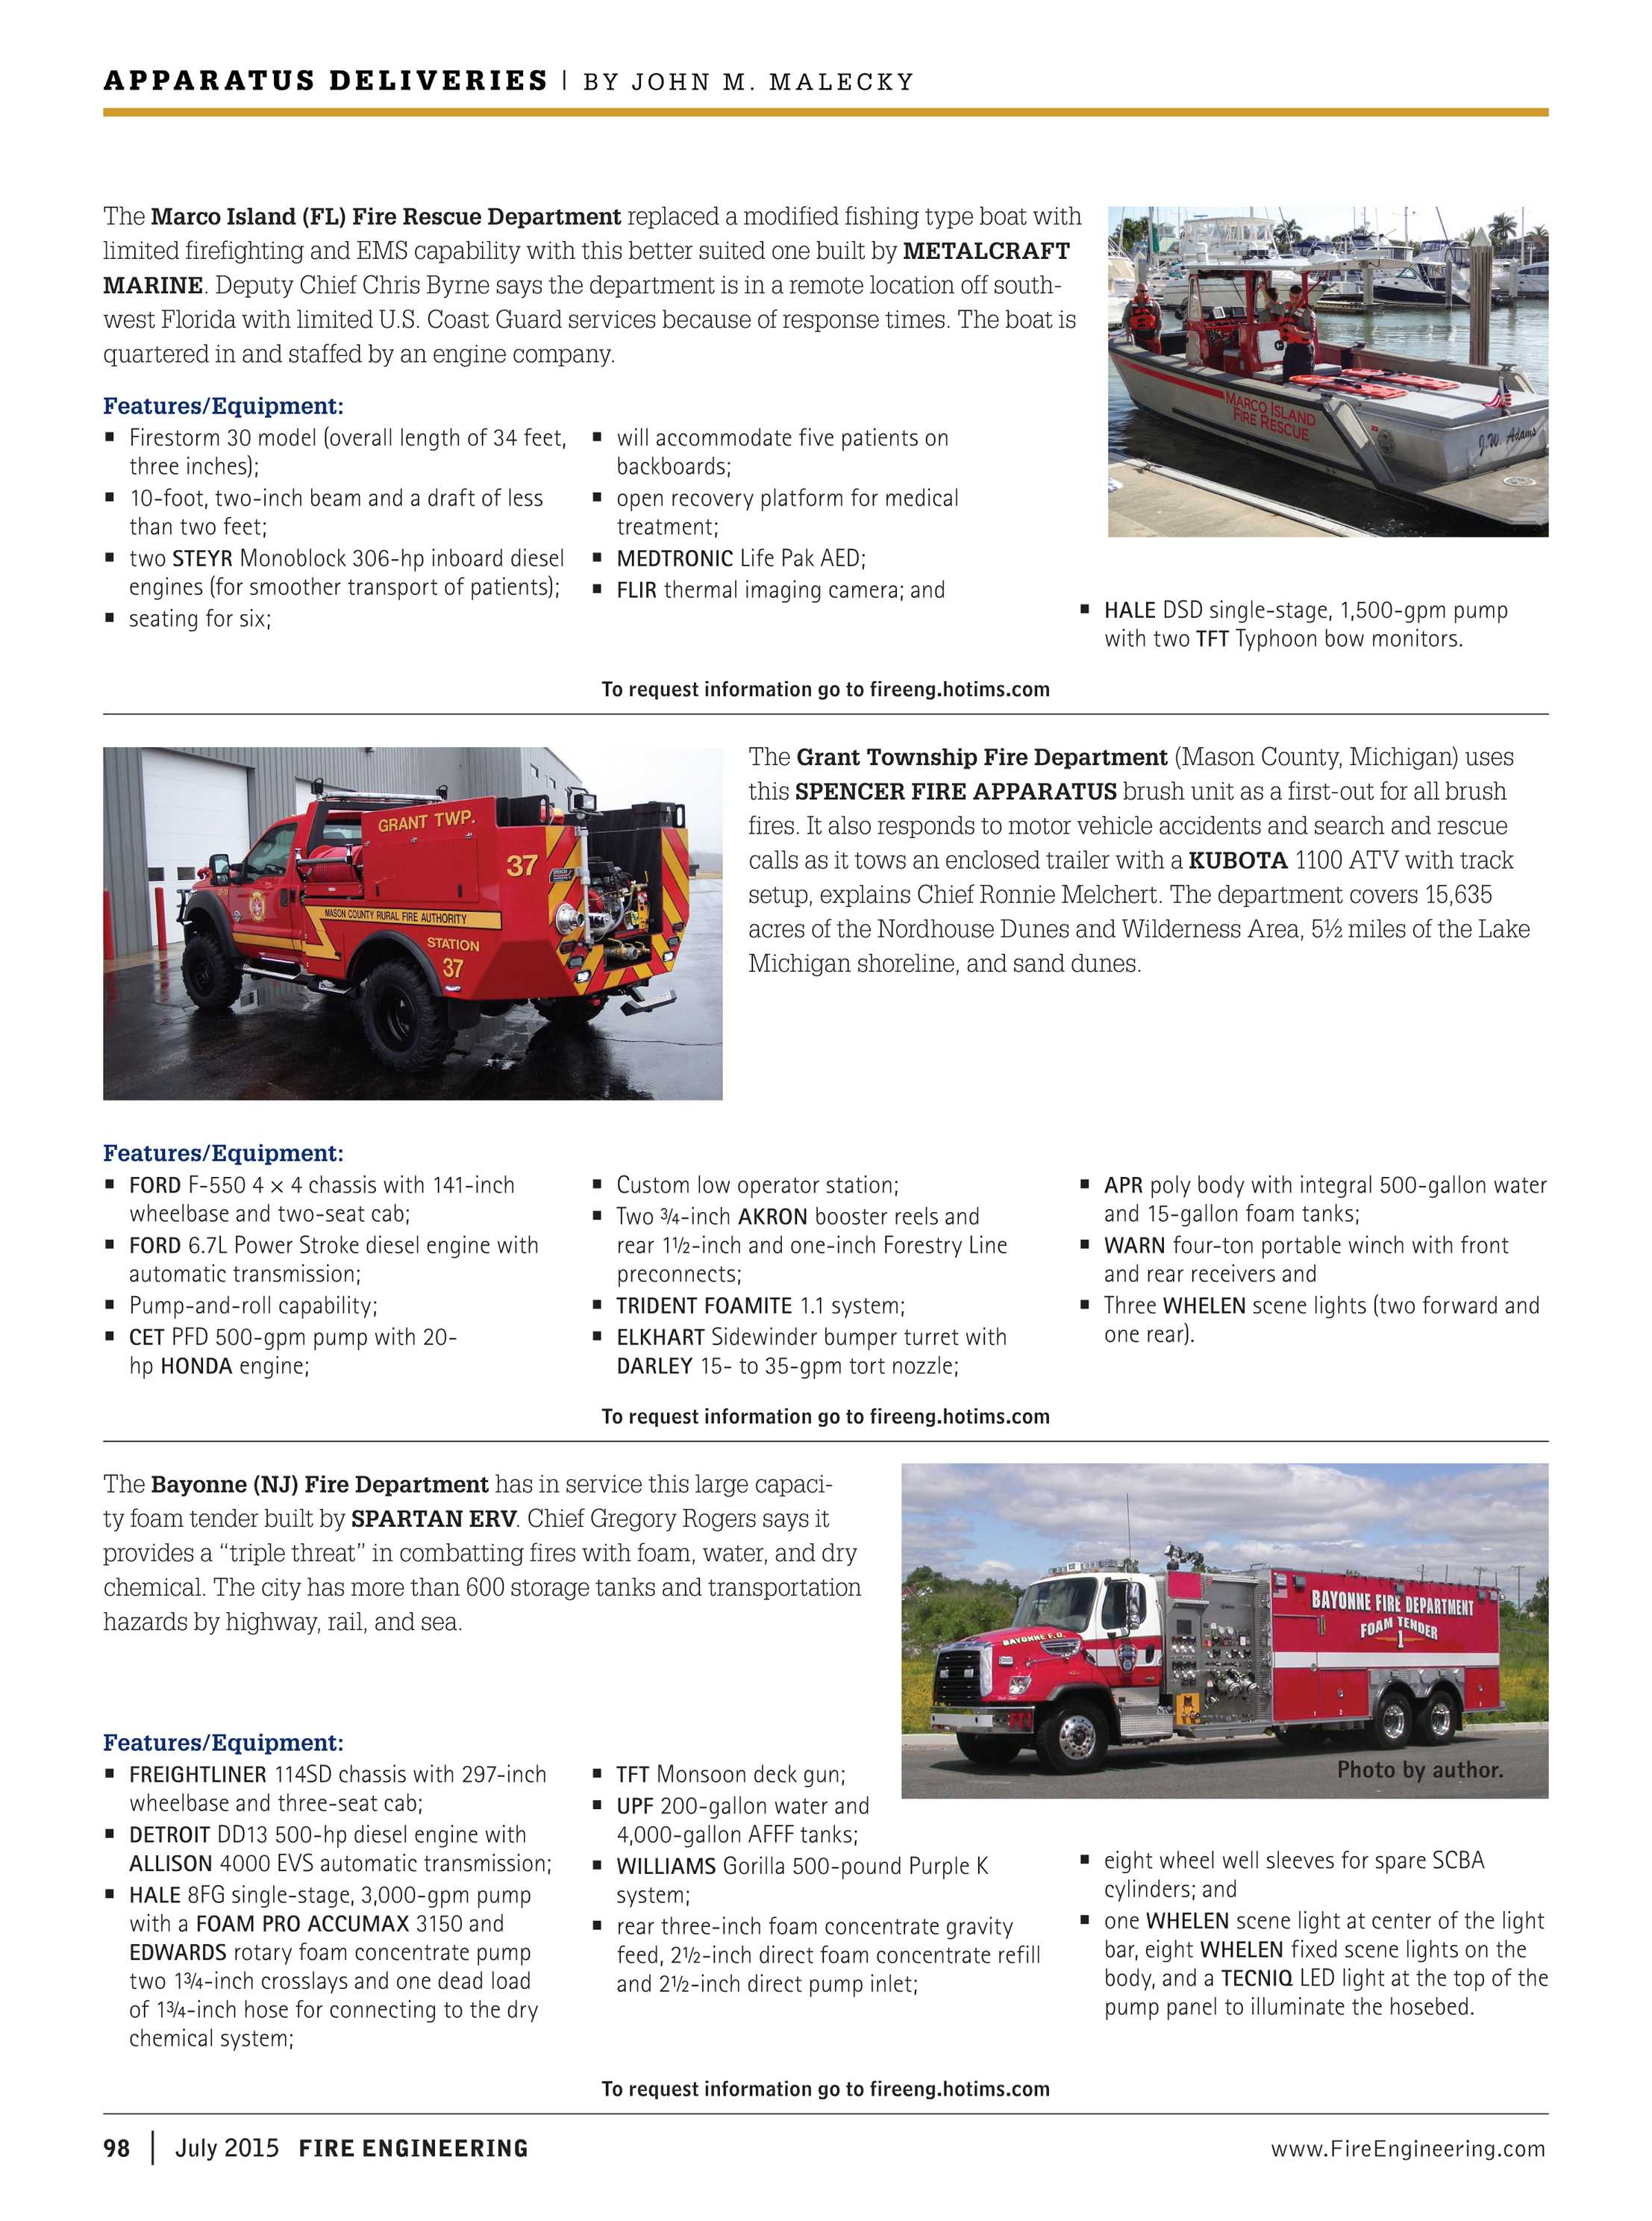 Fire Engineering - July 2015 - page 98